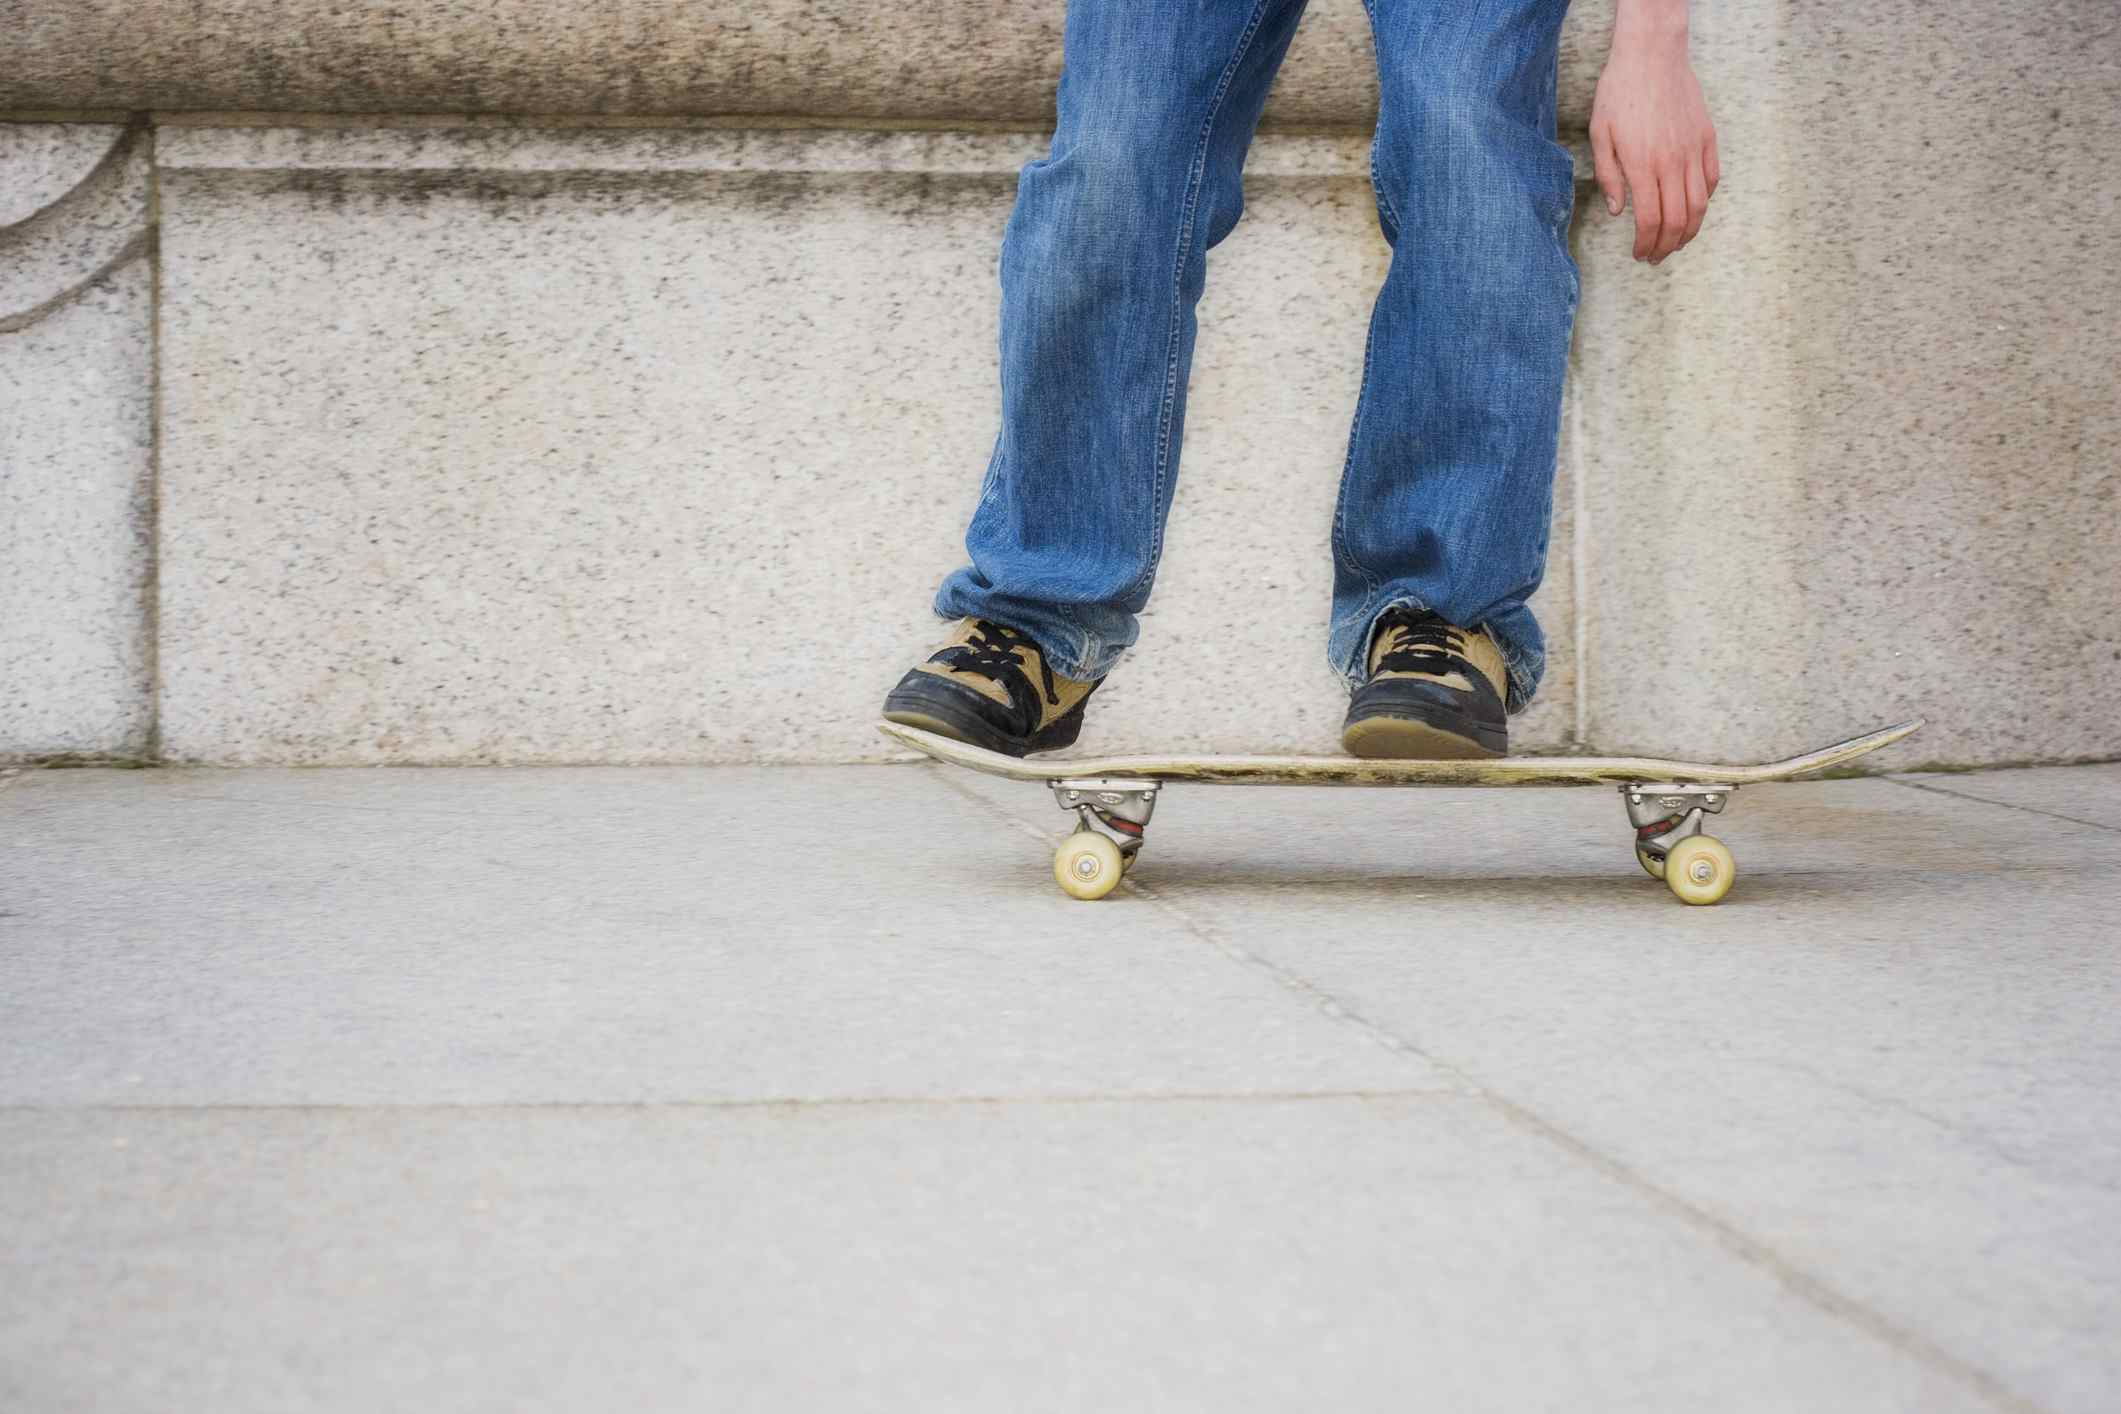 a young person on a skateboard